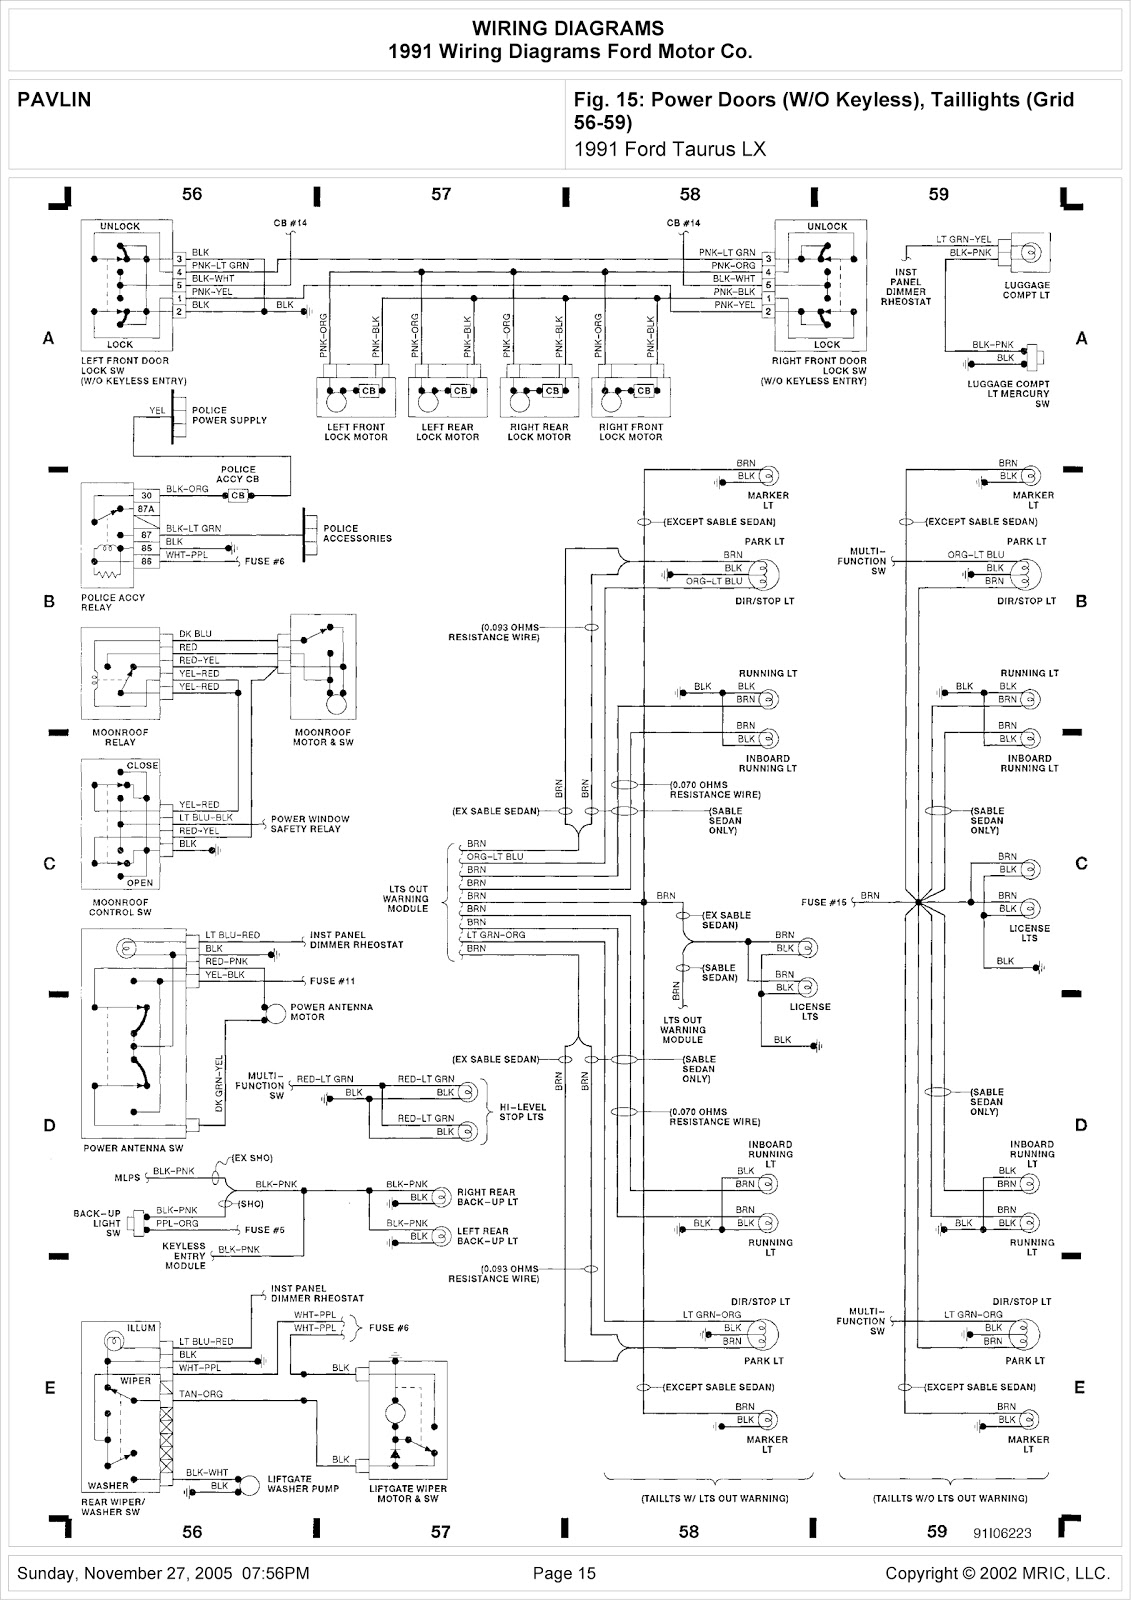 1991 Ford Taurus LX System Wiring Diagram Power Doors